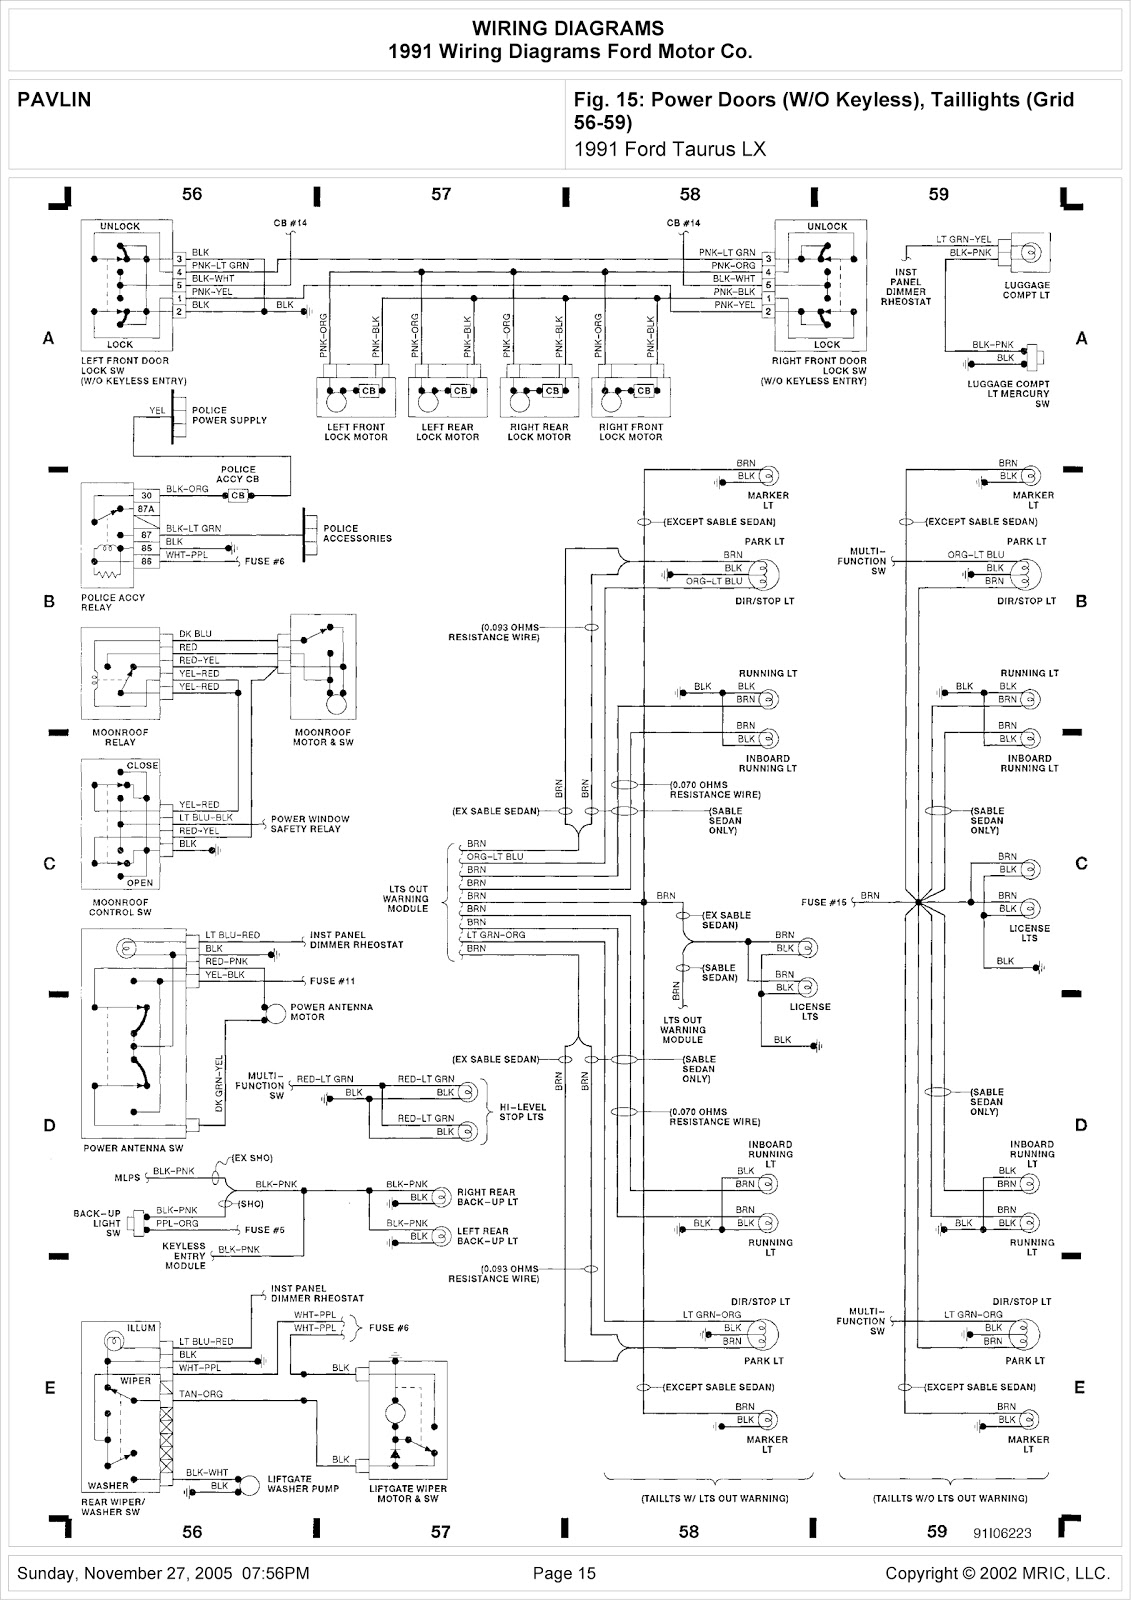 1991 Ford Taurus LX System Wiring Diagram Power Doors